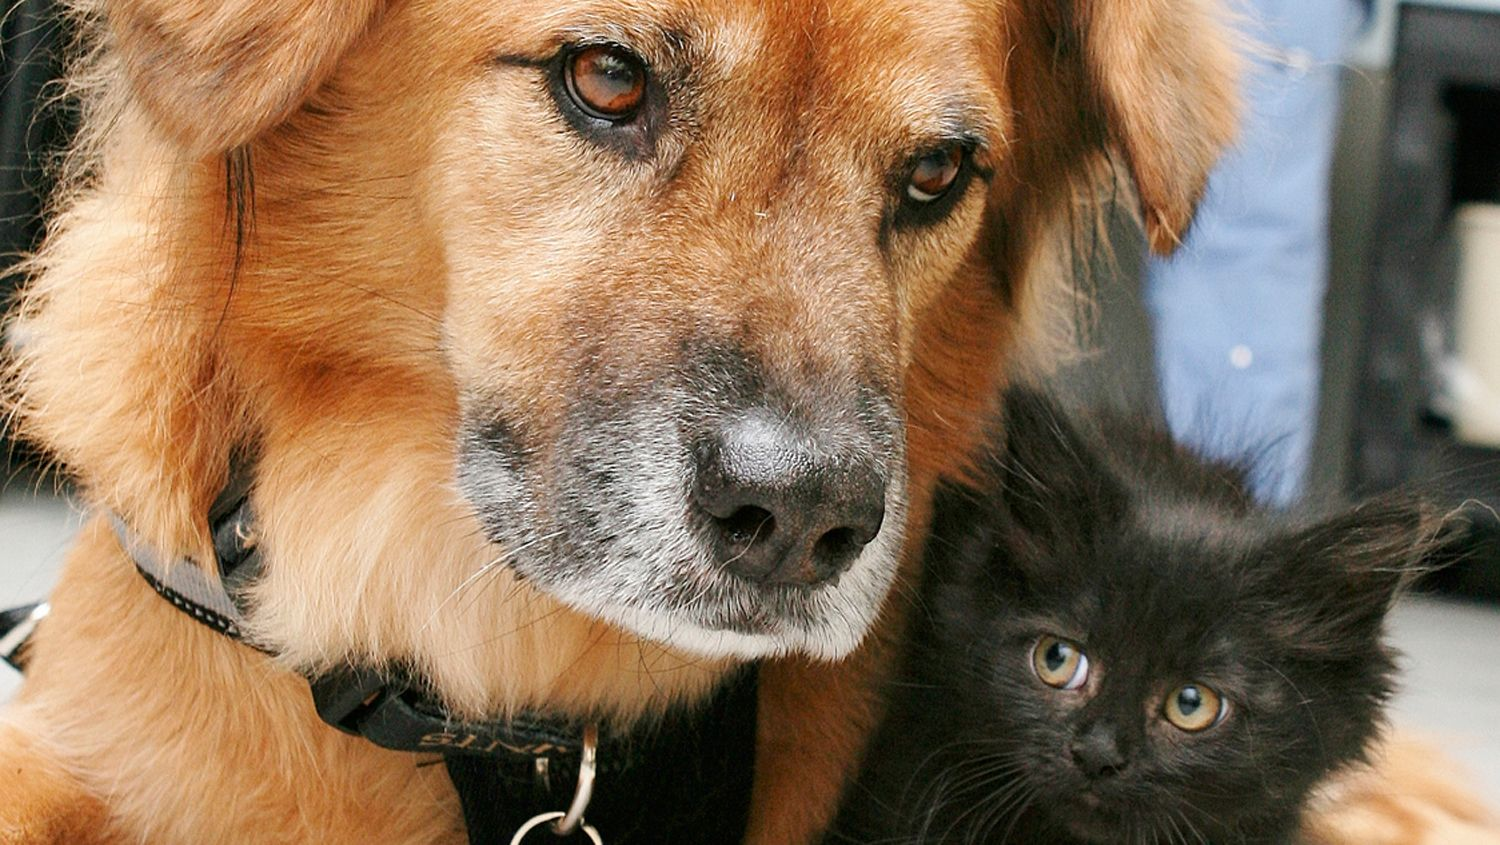 Dog Who Survived Hurricane Katrina Now Calms Arizona Shelter Kittens Shelter Kittens Dogs Golden Retriever